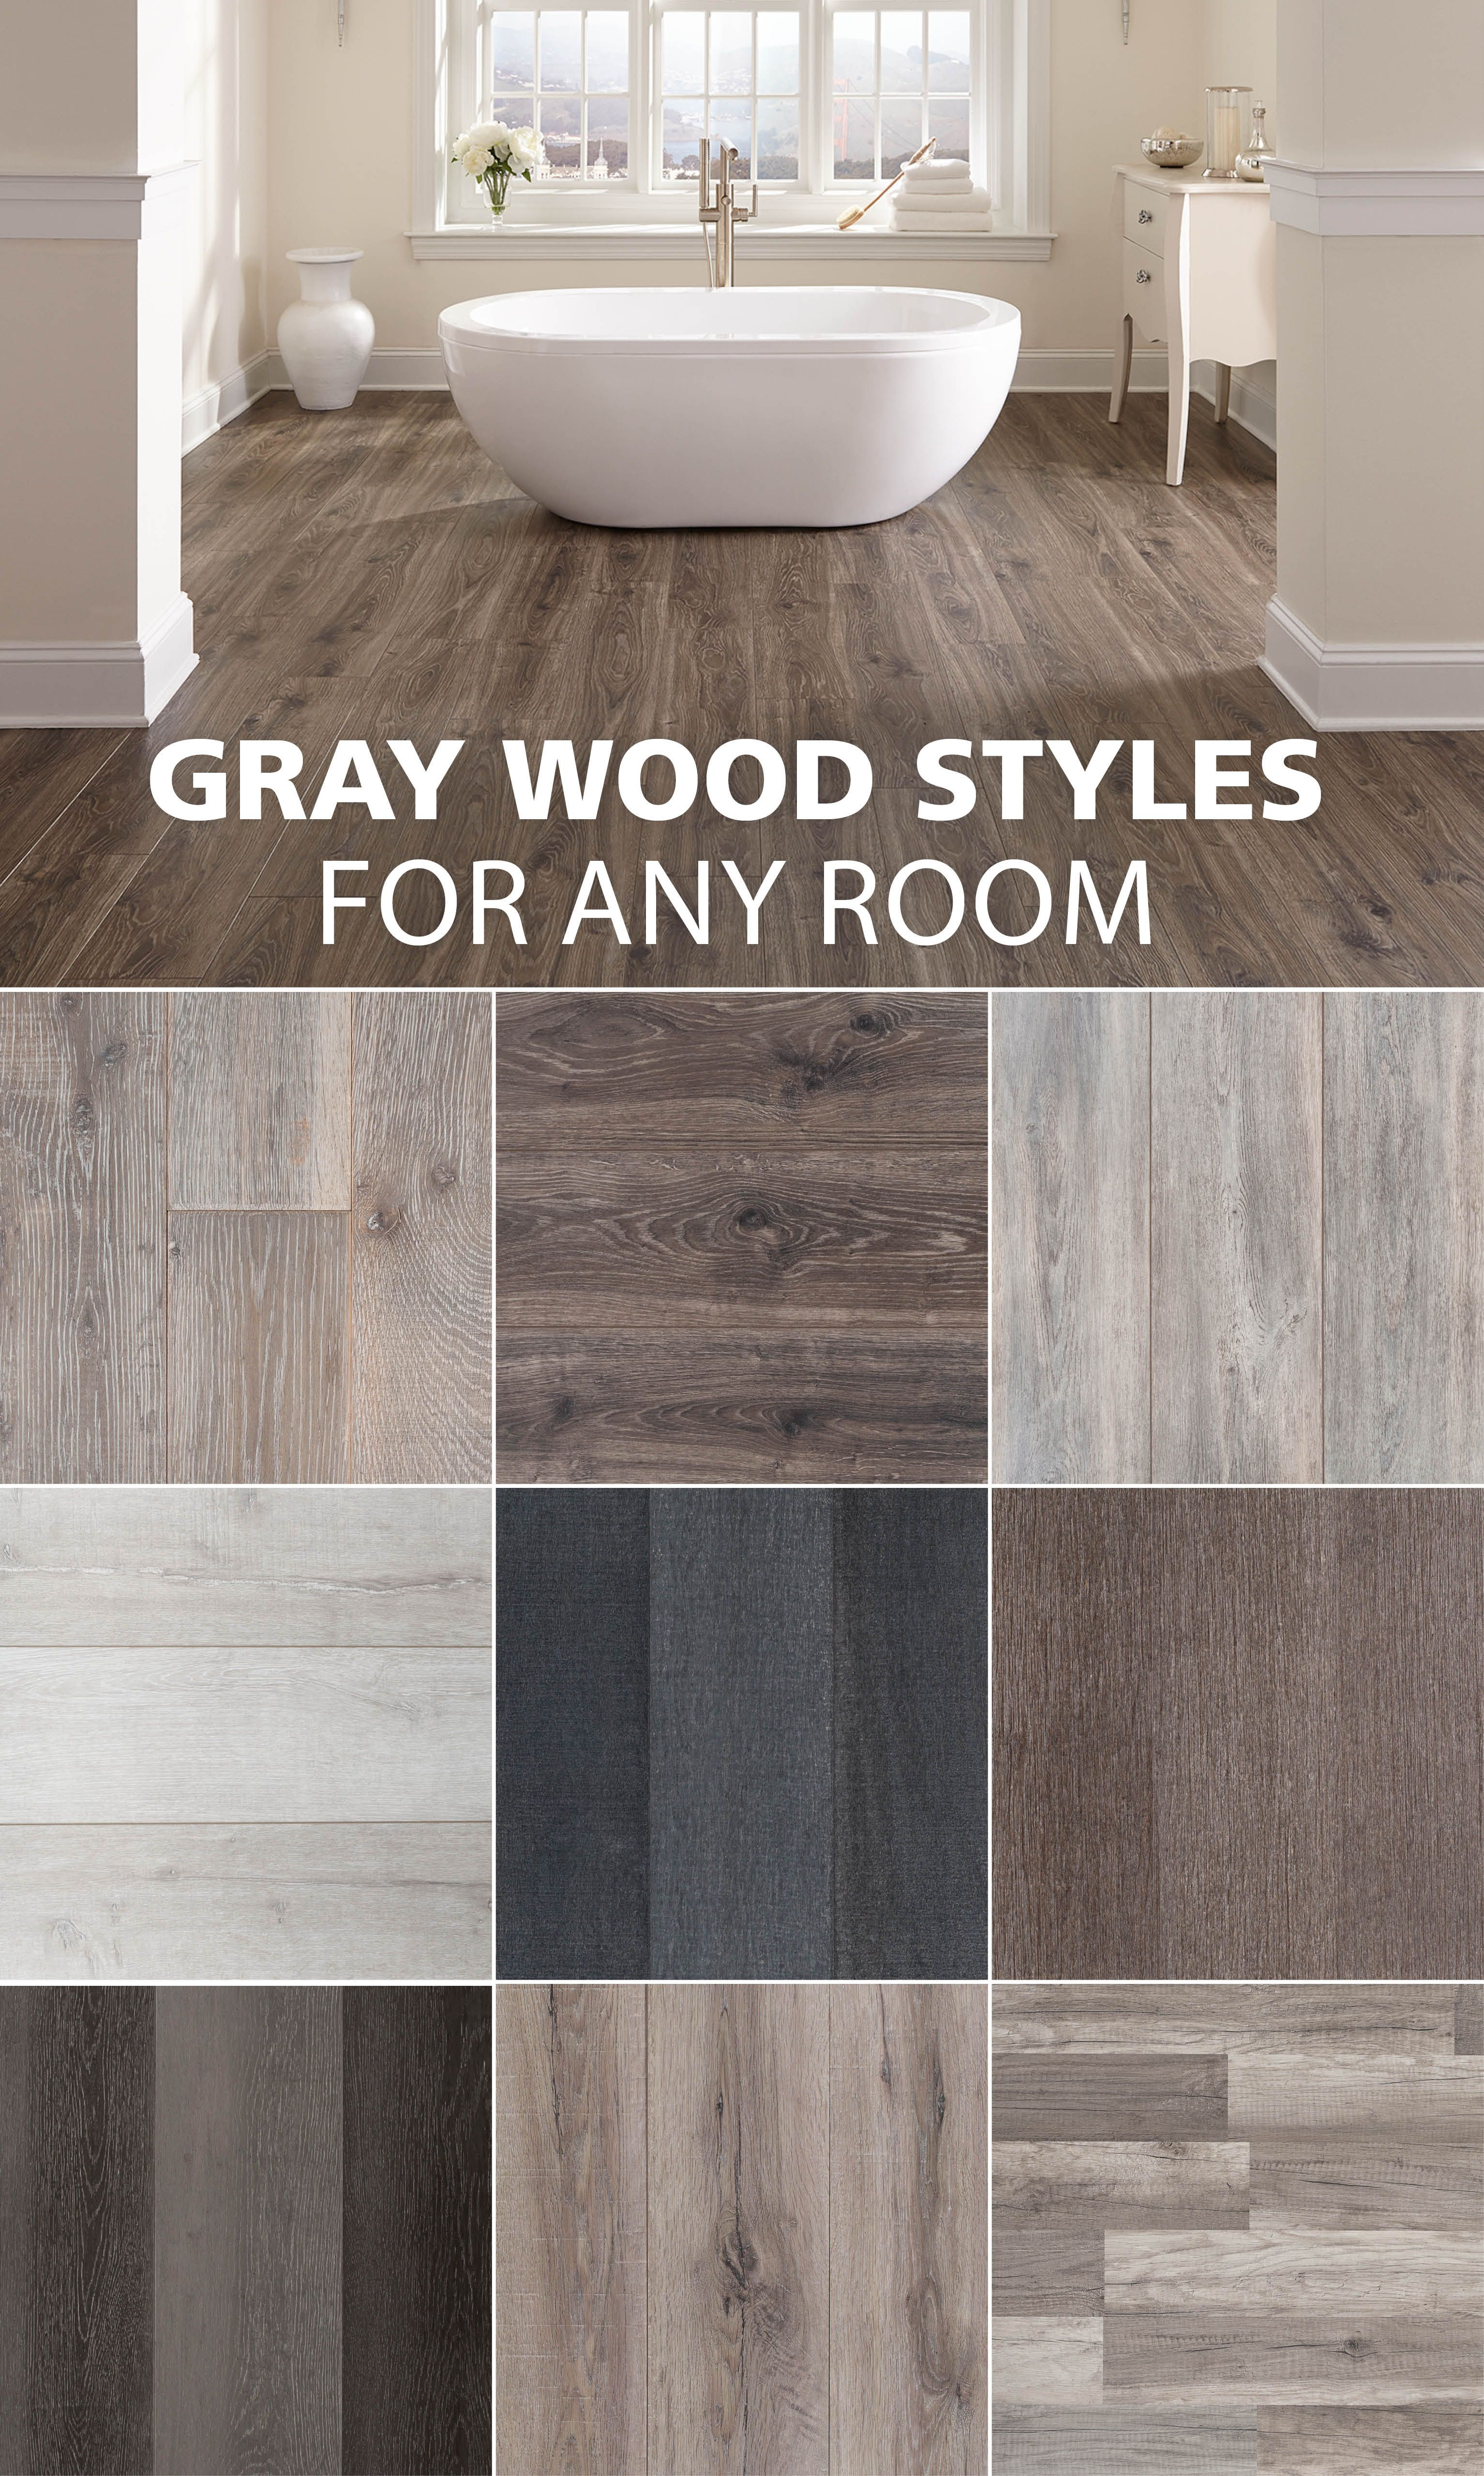 Grauer Holzboden Here Are Some Of Our Favorite Gray Wood Look Styles Home Decor